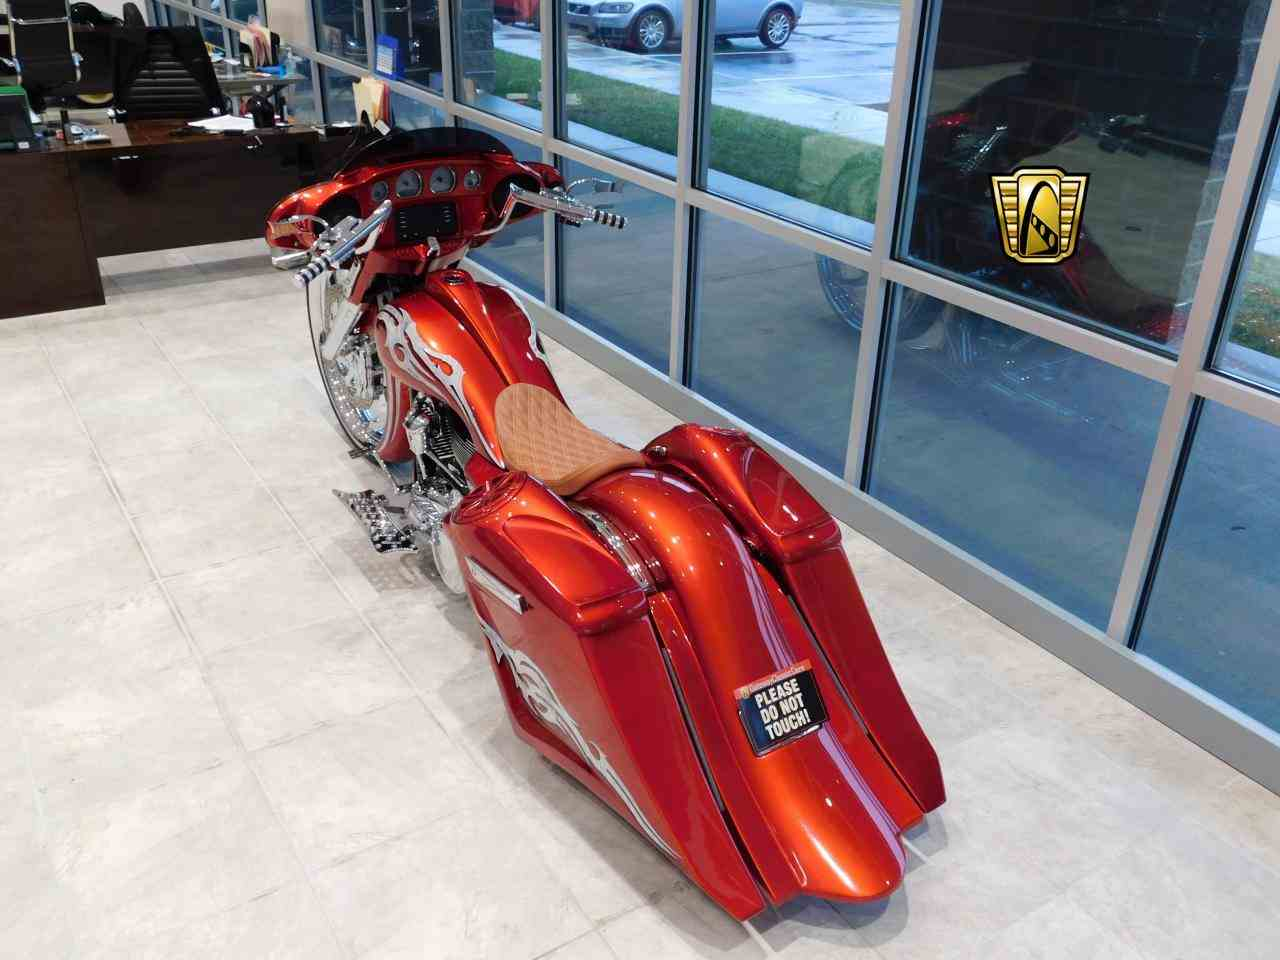 Large Picture of 2017 Motorcycle located in Alpharetta Georgia - $98,000.00 Offered by Gateway Classic Cars - Atlanta - MOAJ